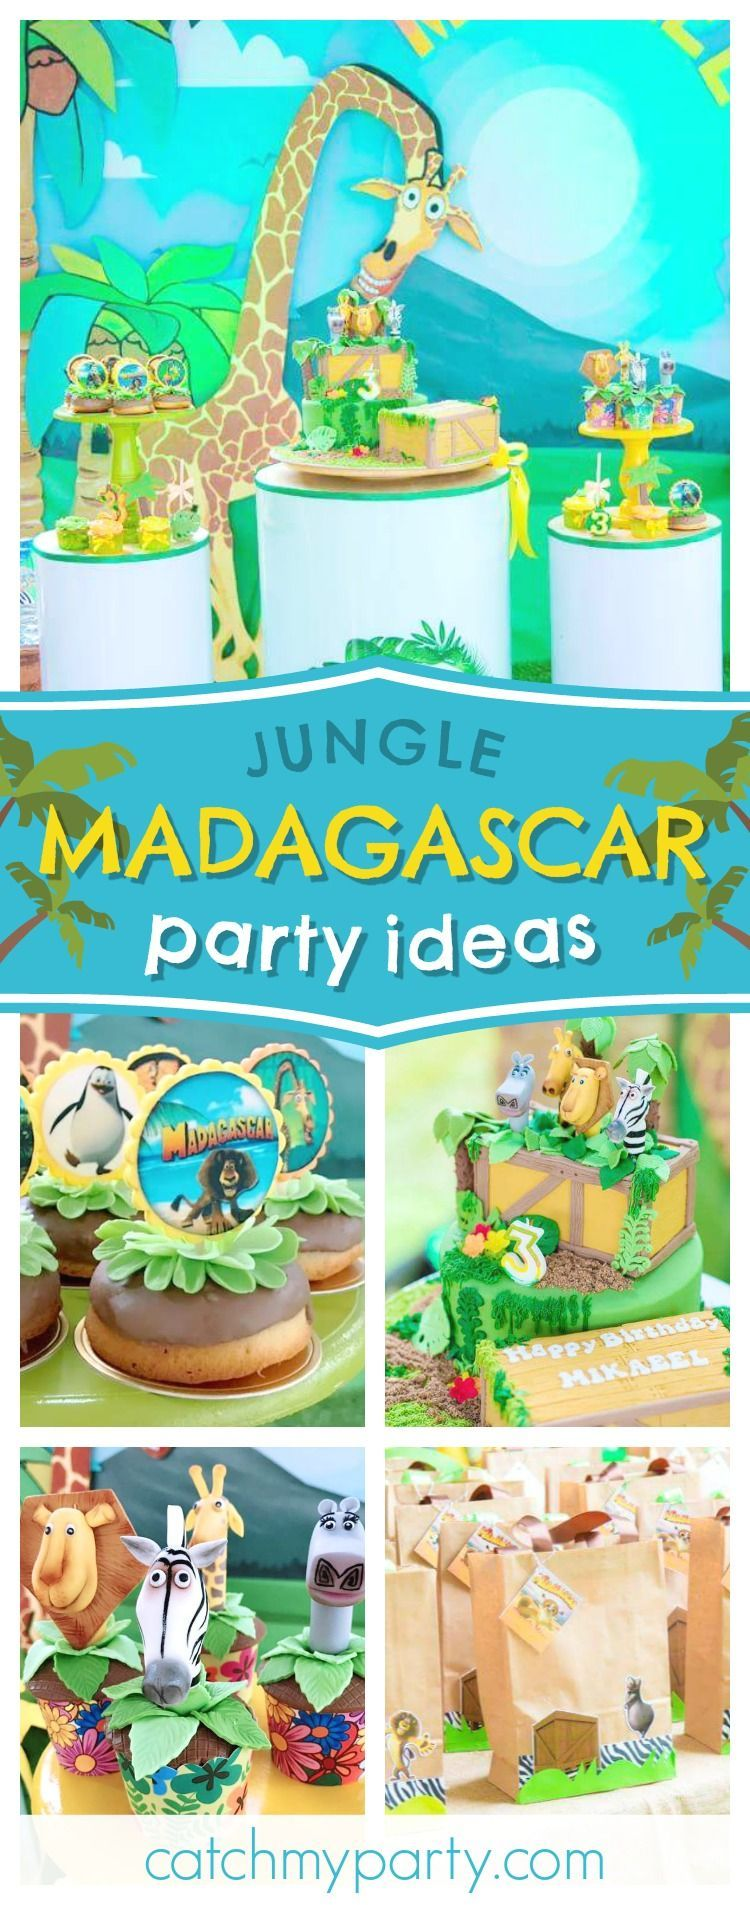 Madagascar Birthday Mikaeel S Party In The Jungle